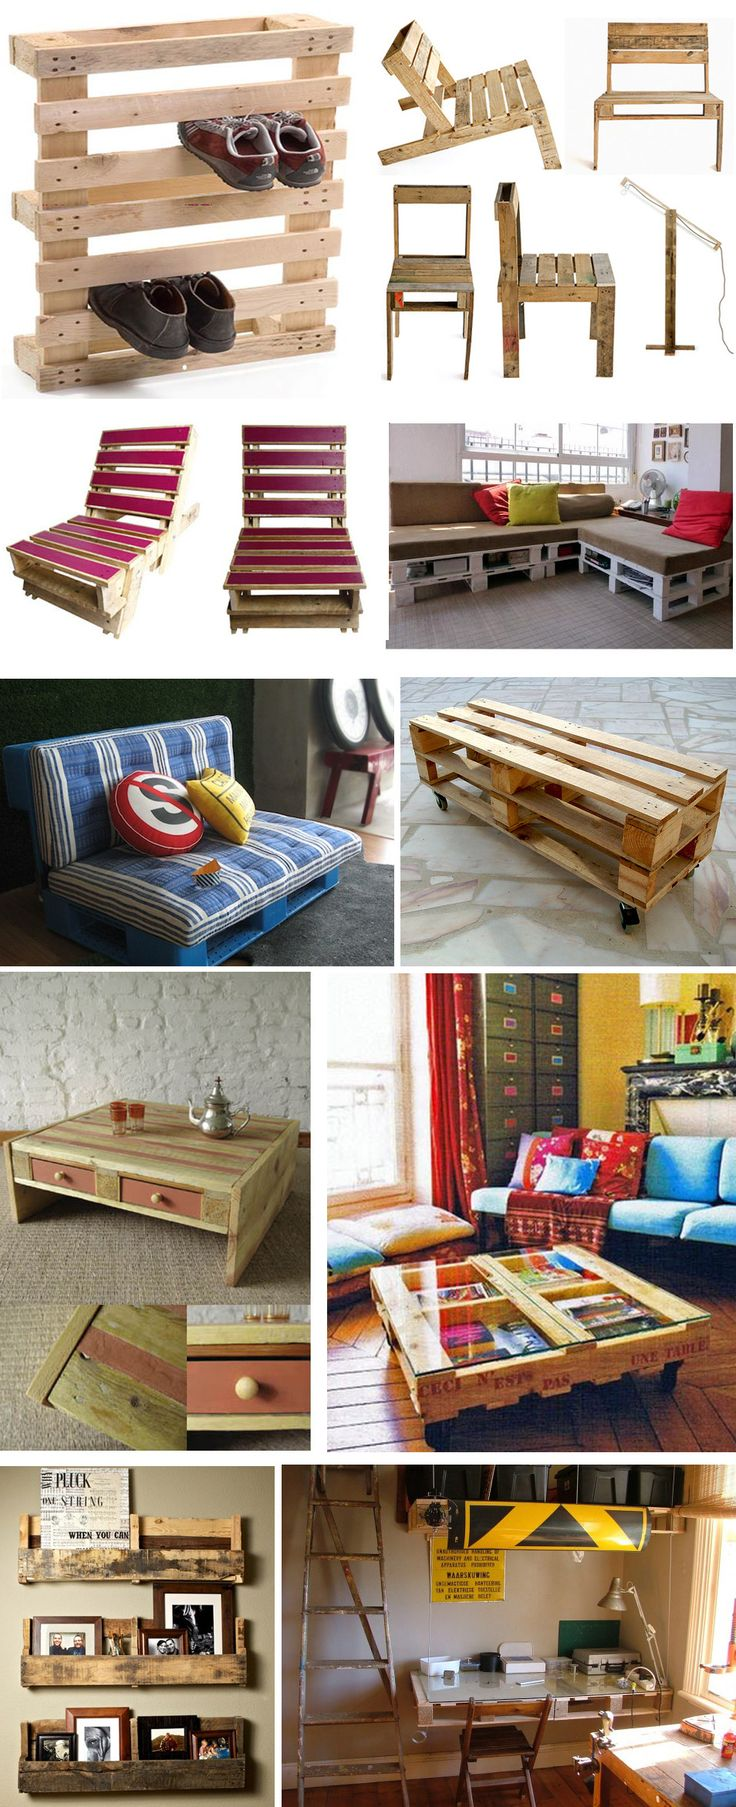 Some Great furnitures made by alternative materials.,MARAVILHOSAS EDEIAS PRA APROVEITAMENTO DE MADEIRAS